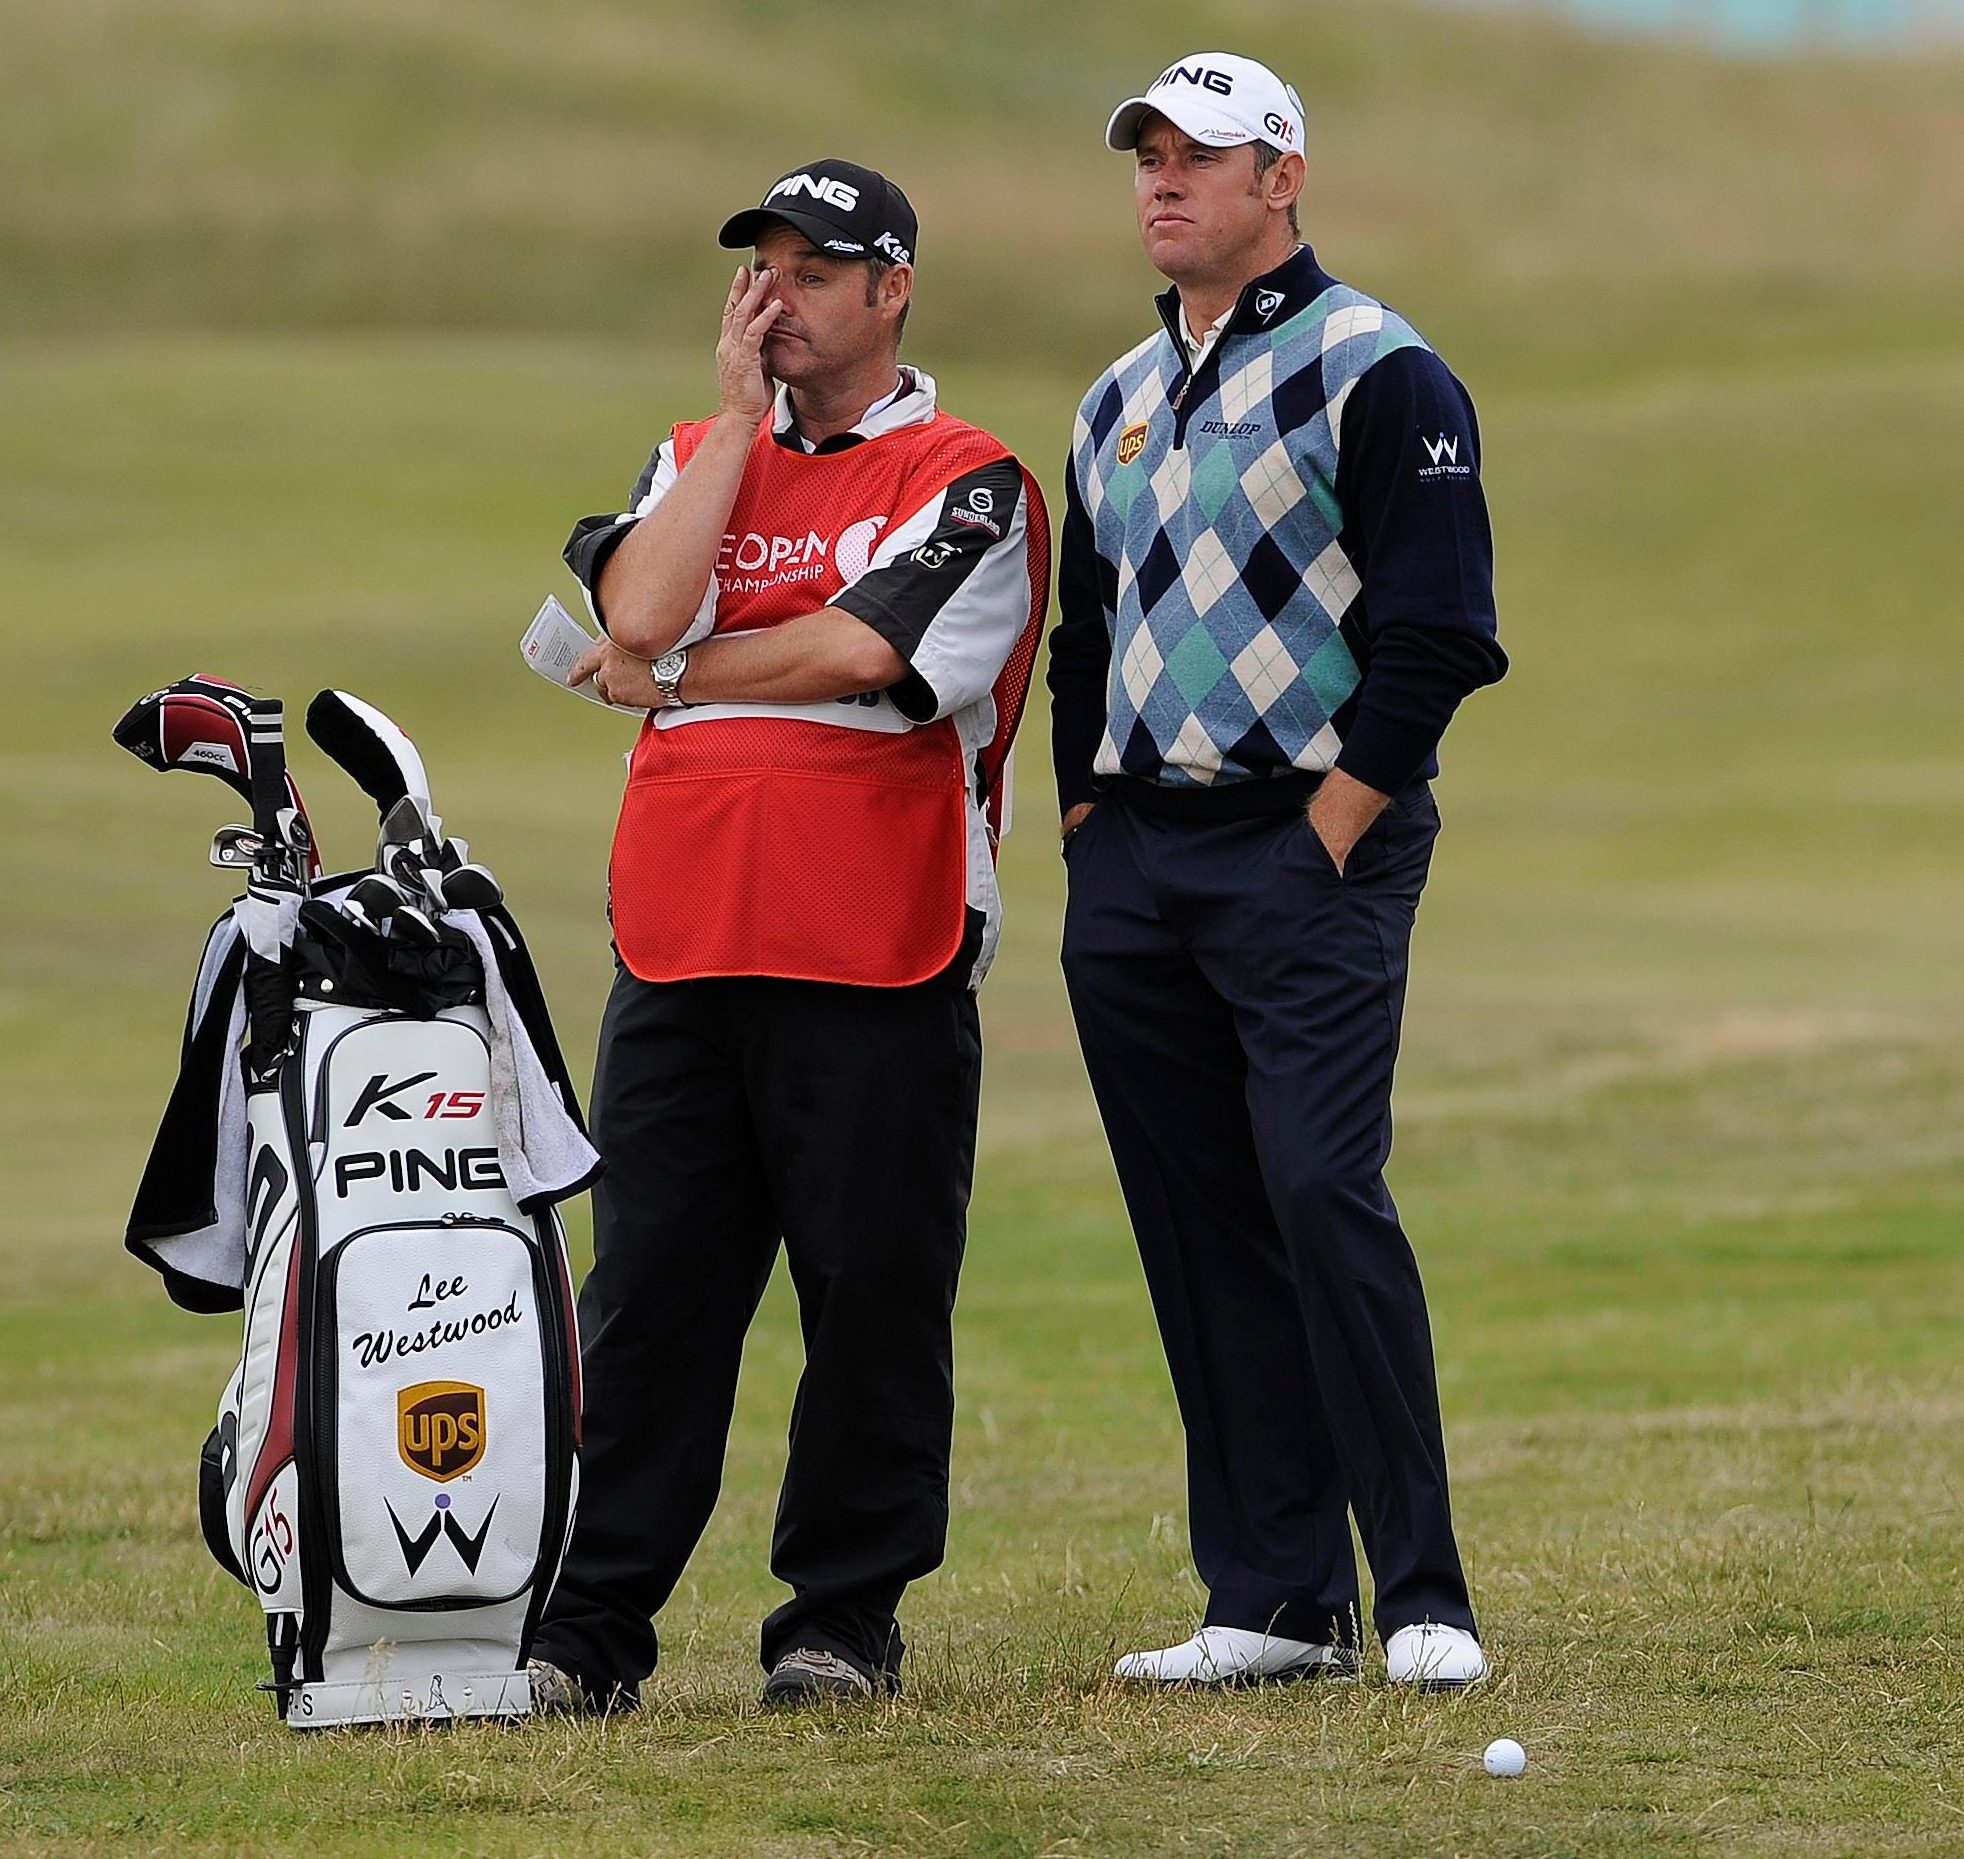 Westy split with legendary bagman Foster at this month's Turkish Airlines Open